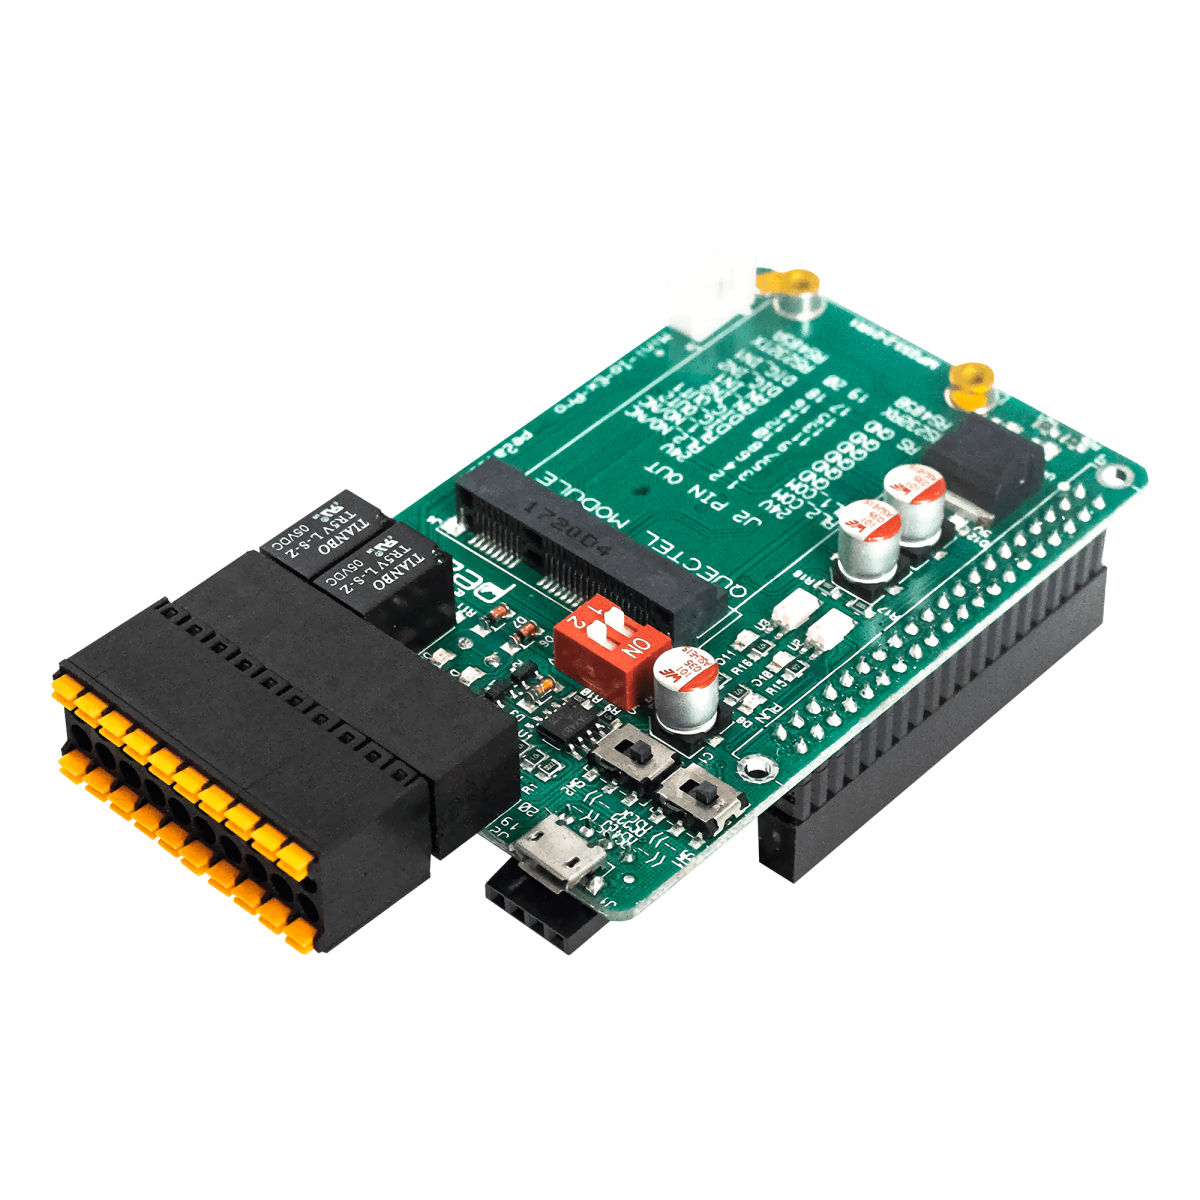 MiniIOEx 3G Support Raspberry Pi IO Shield | Samm Market